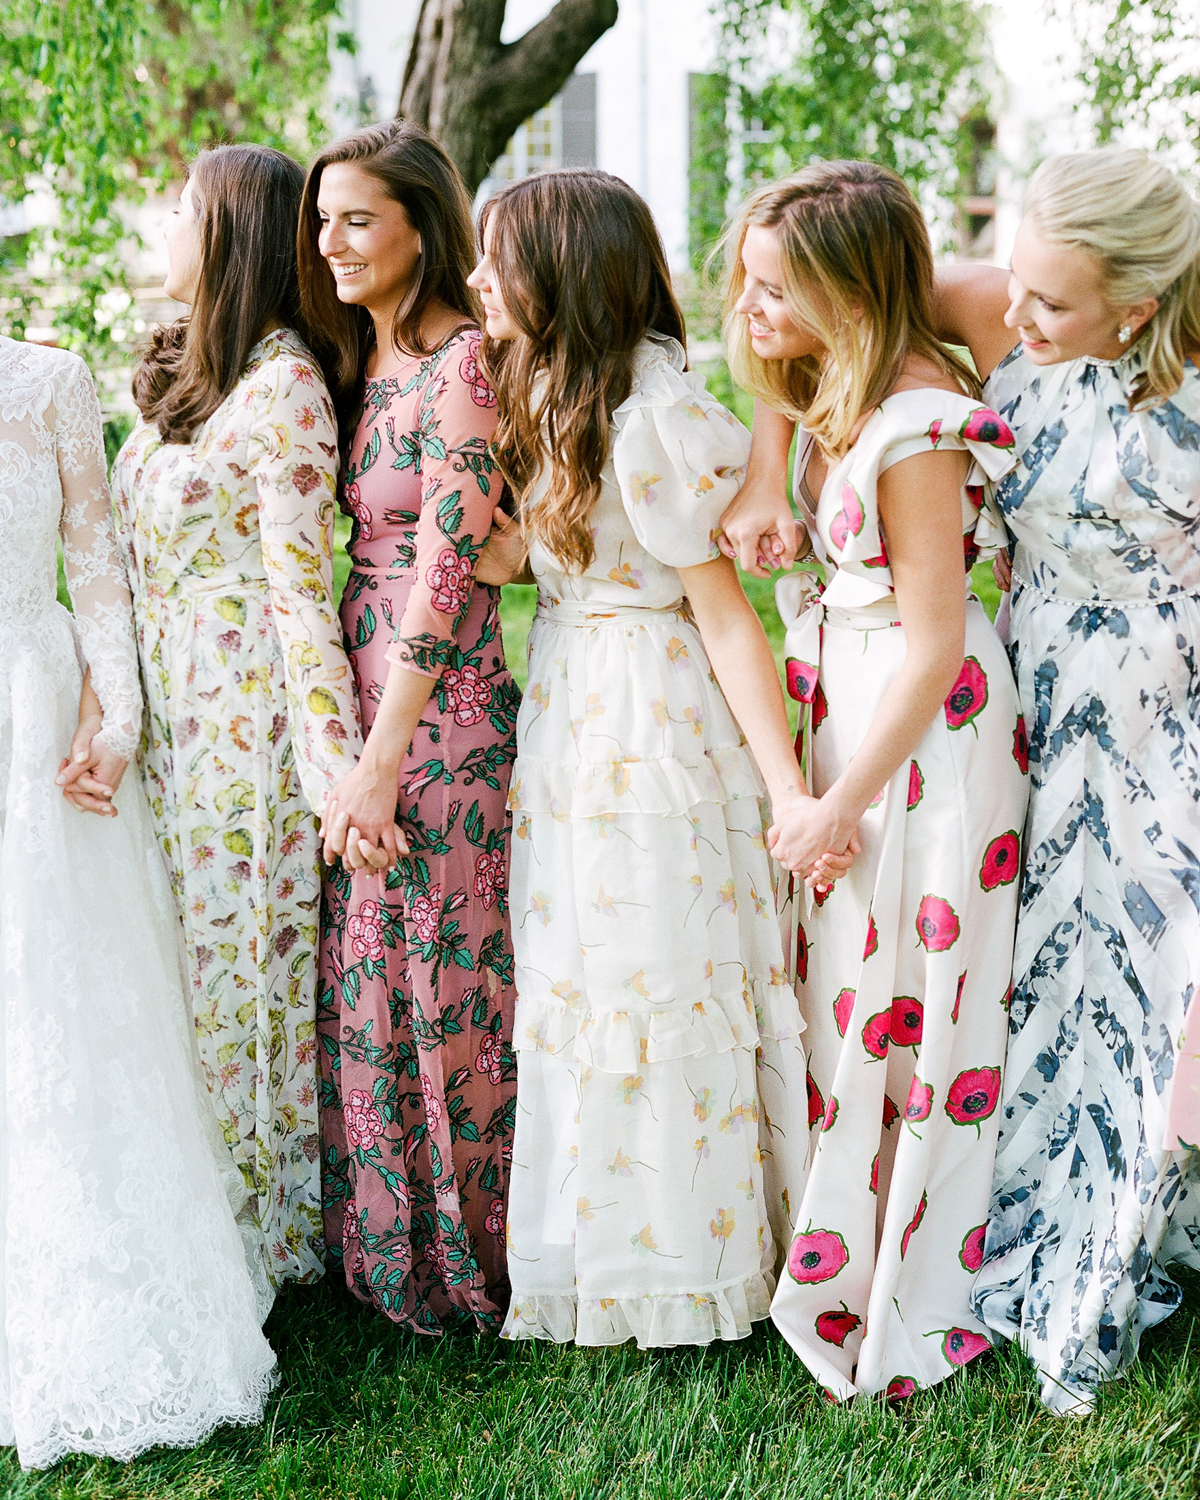 bridesmaids wearing floral print dresses